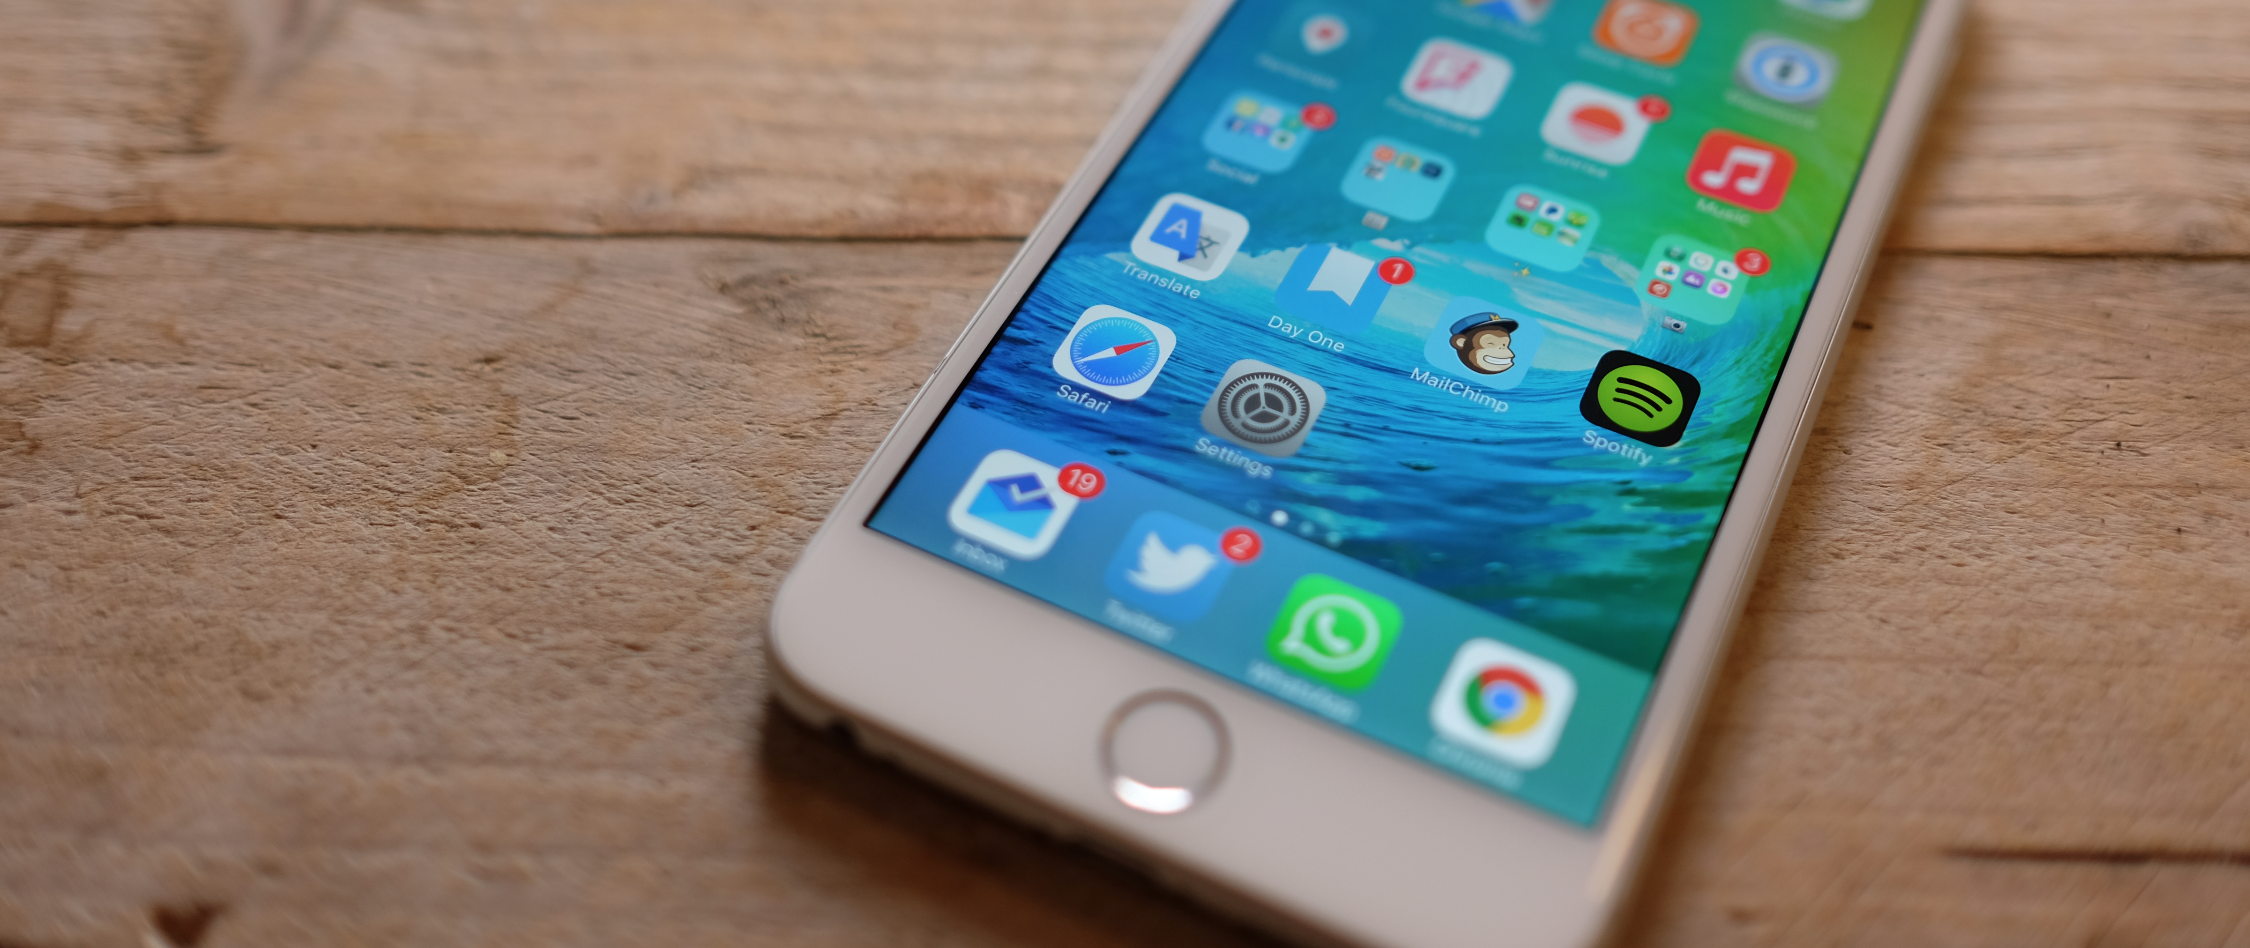 iOS 9 content blocking will transform the mobile Web: I've tried it